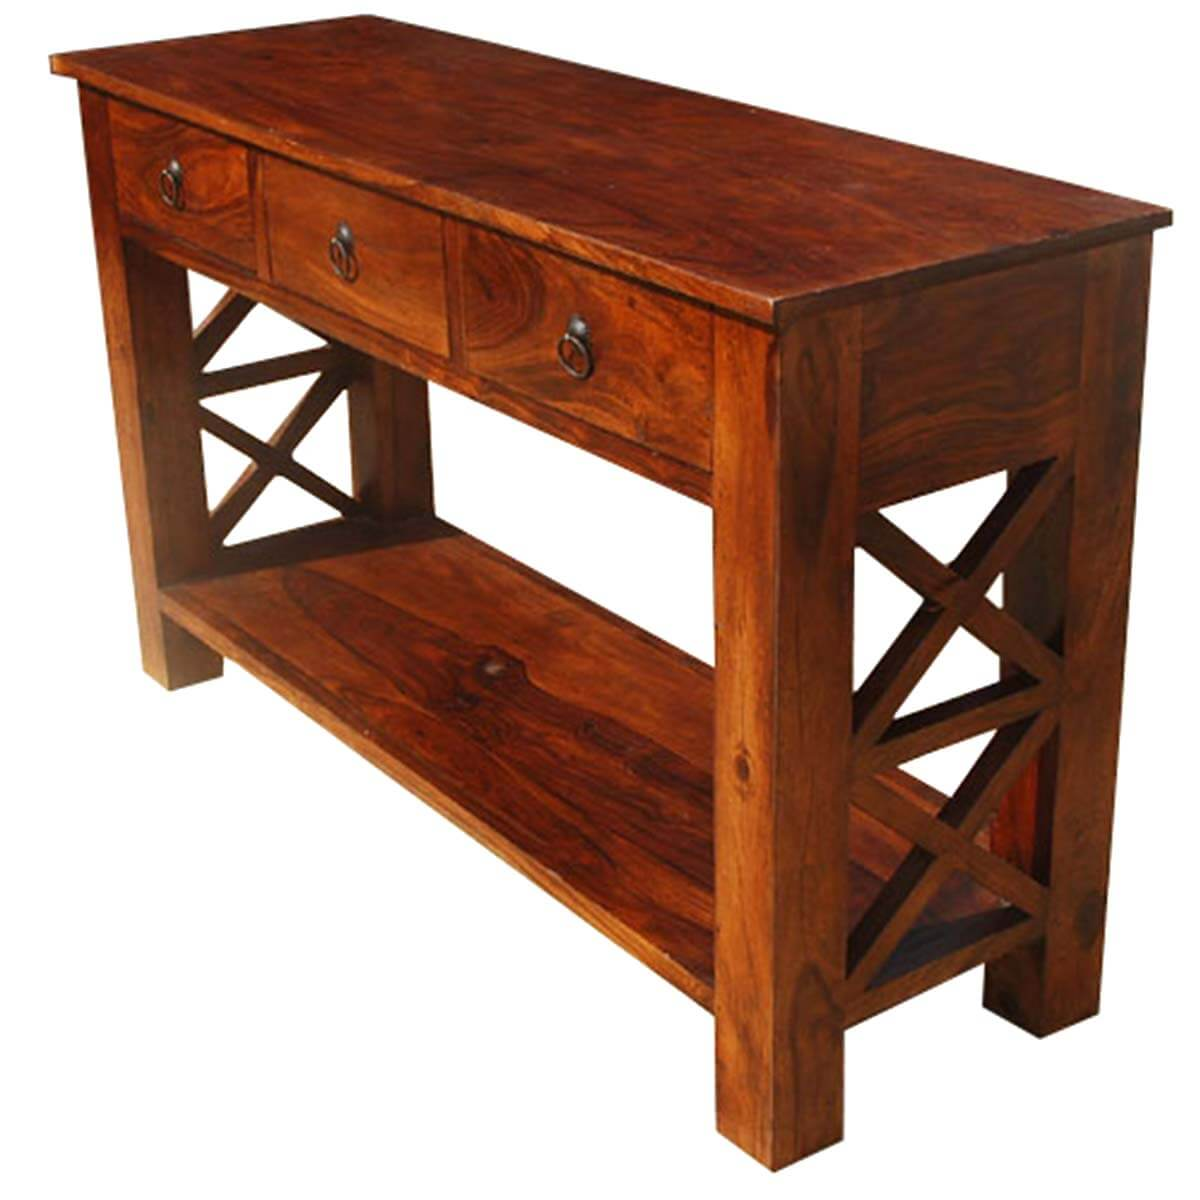 Marvelous photograph of Solid Wood Oklahoma Farmhouse Console Table w 3 Storage Drawers with #B14C15 color and 1200x1200 pixels